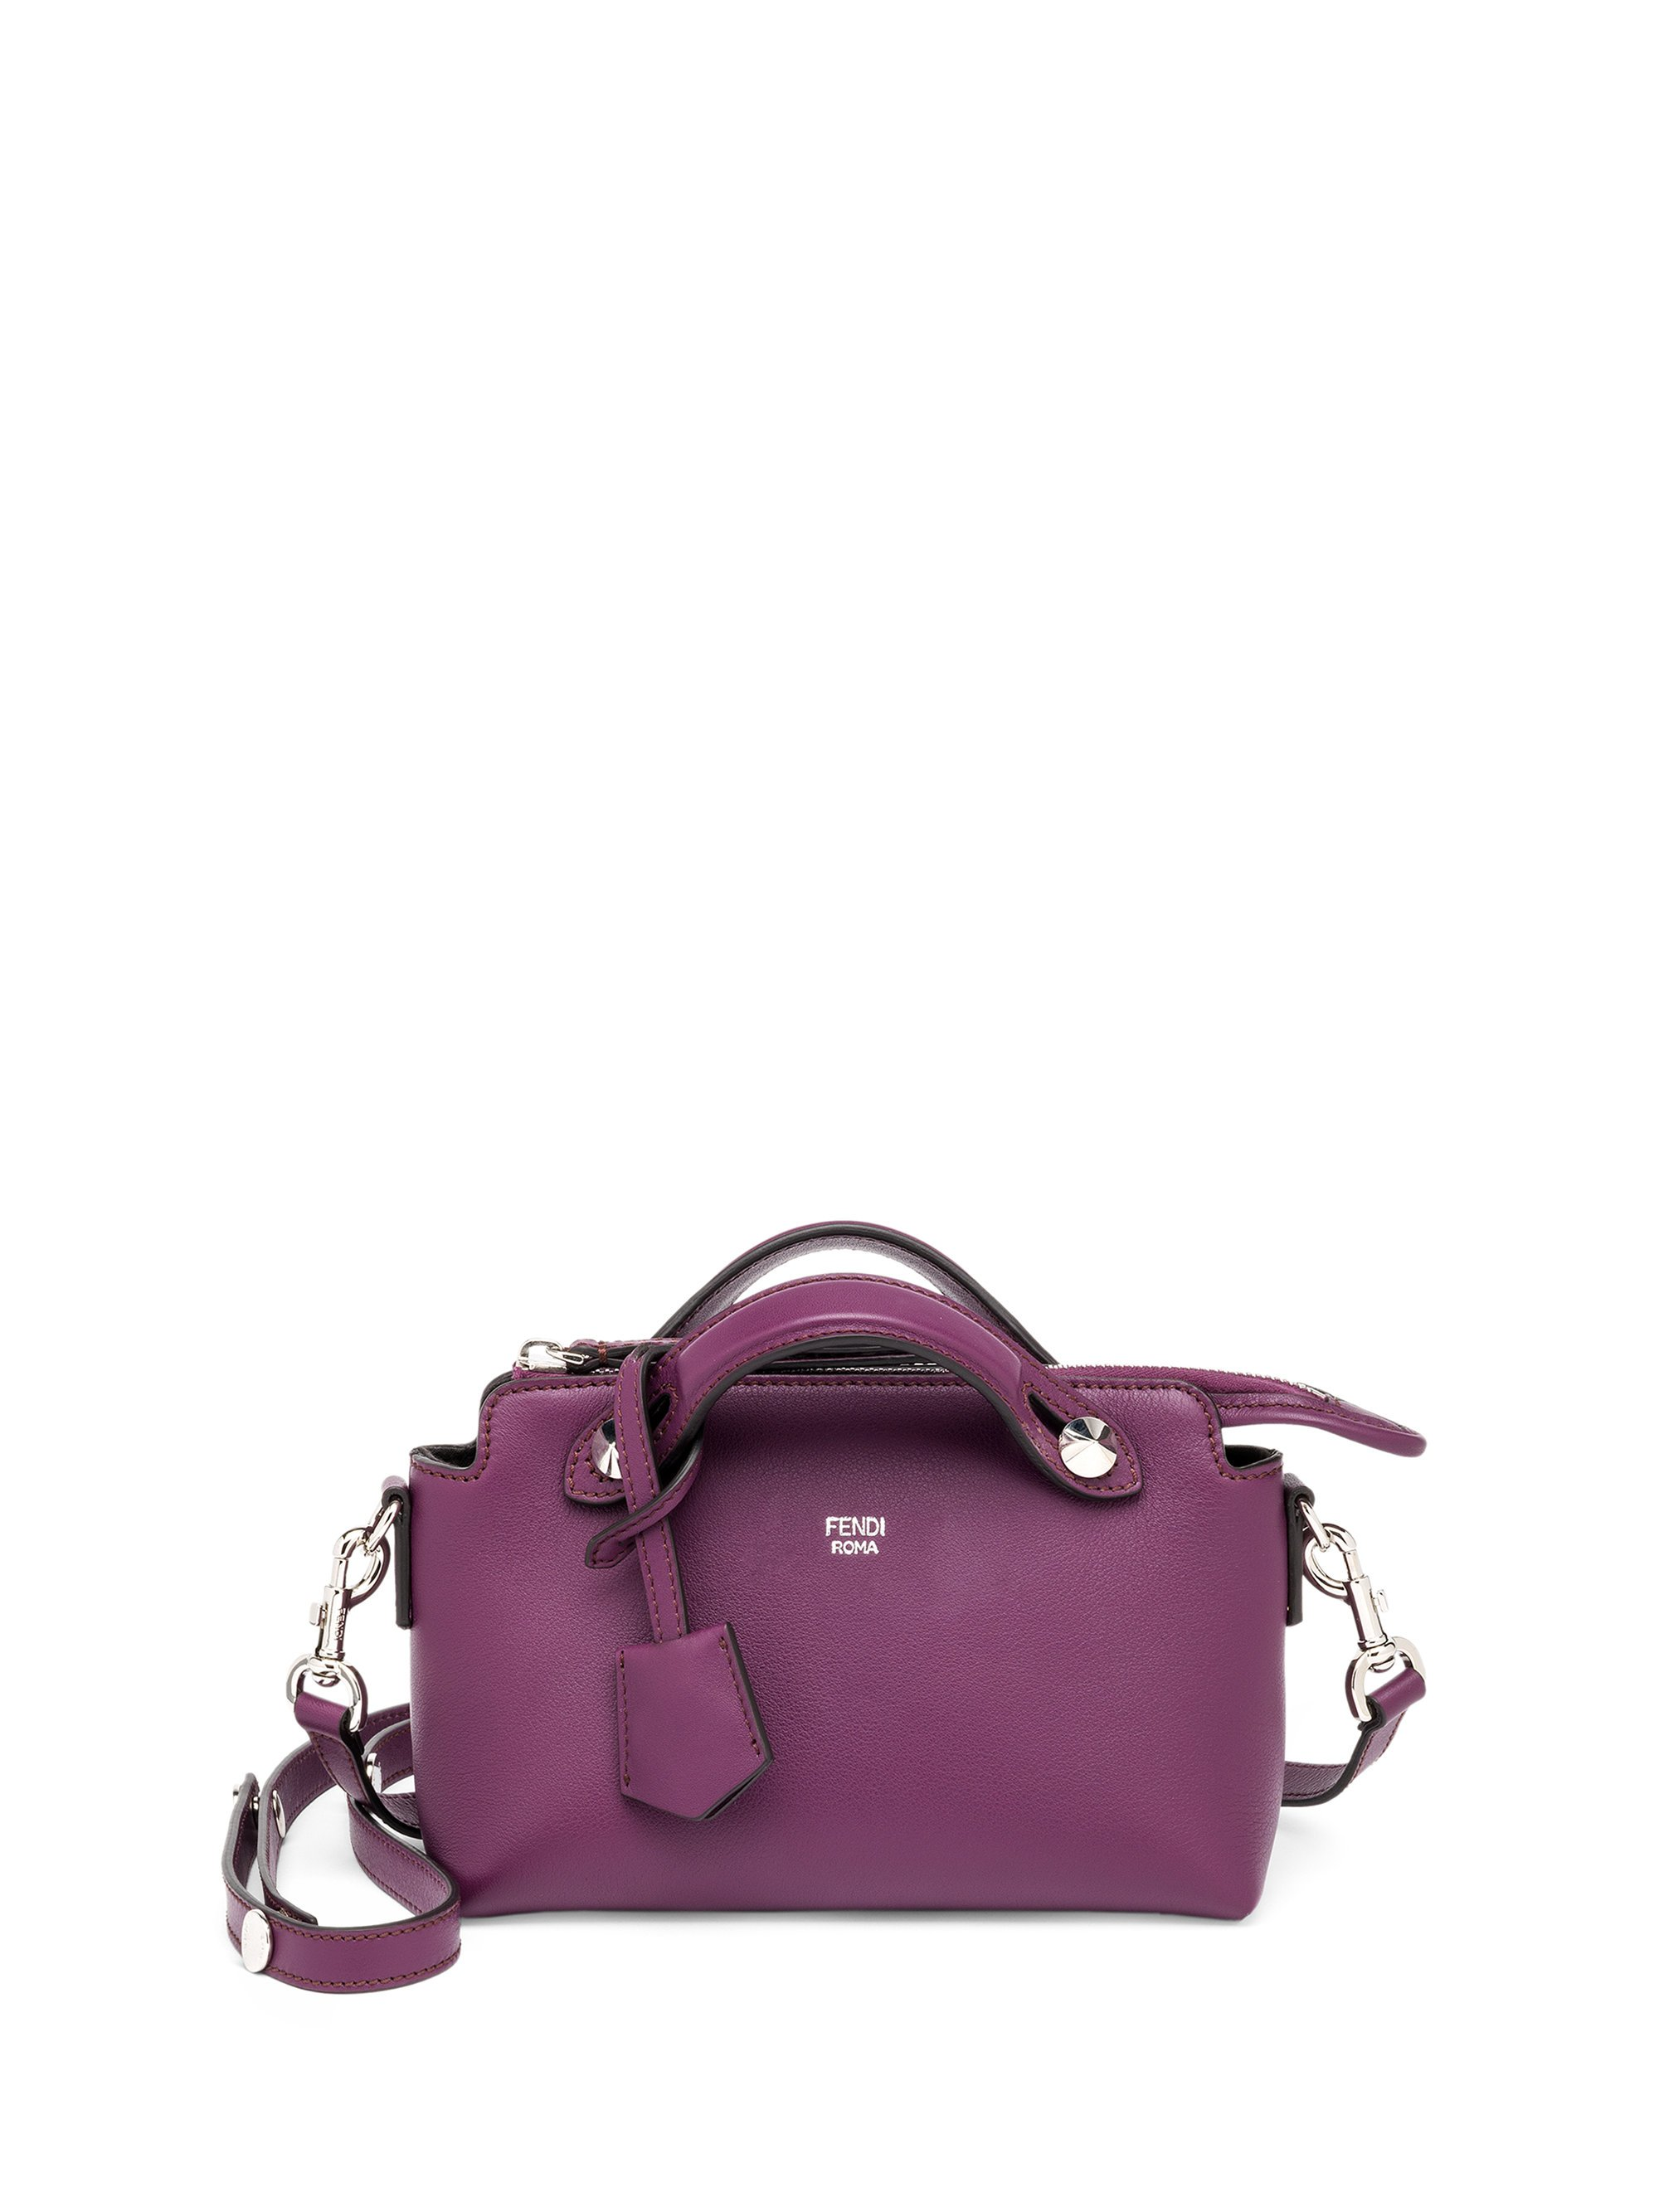 b290e16f6f Fendi By The Way Mini Leather Satchel in Purple - Lyst